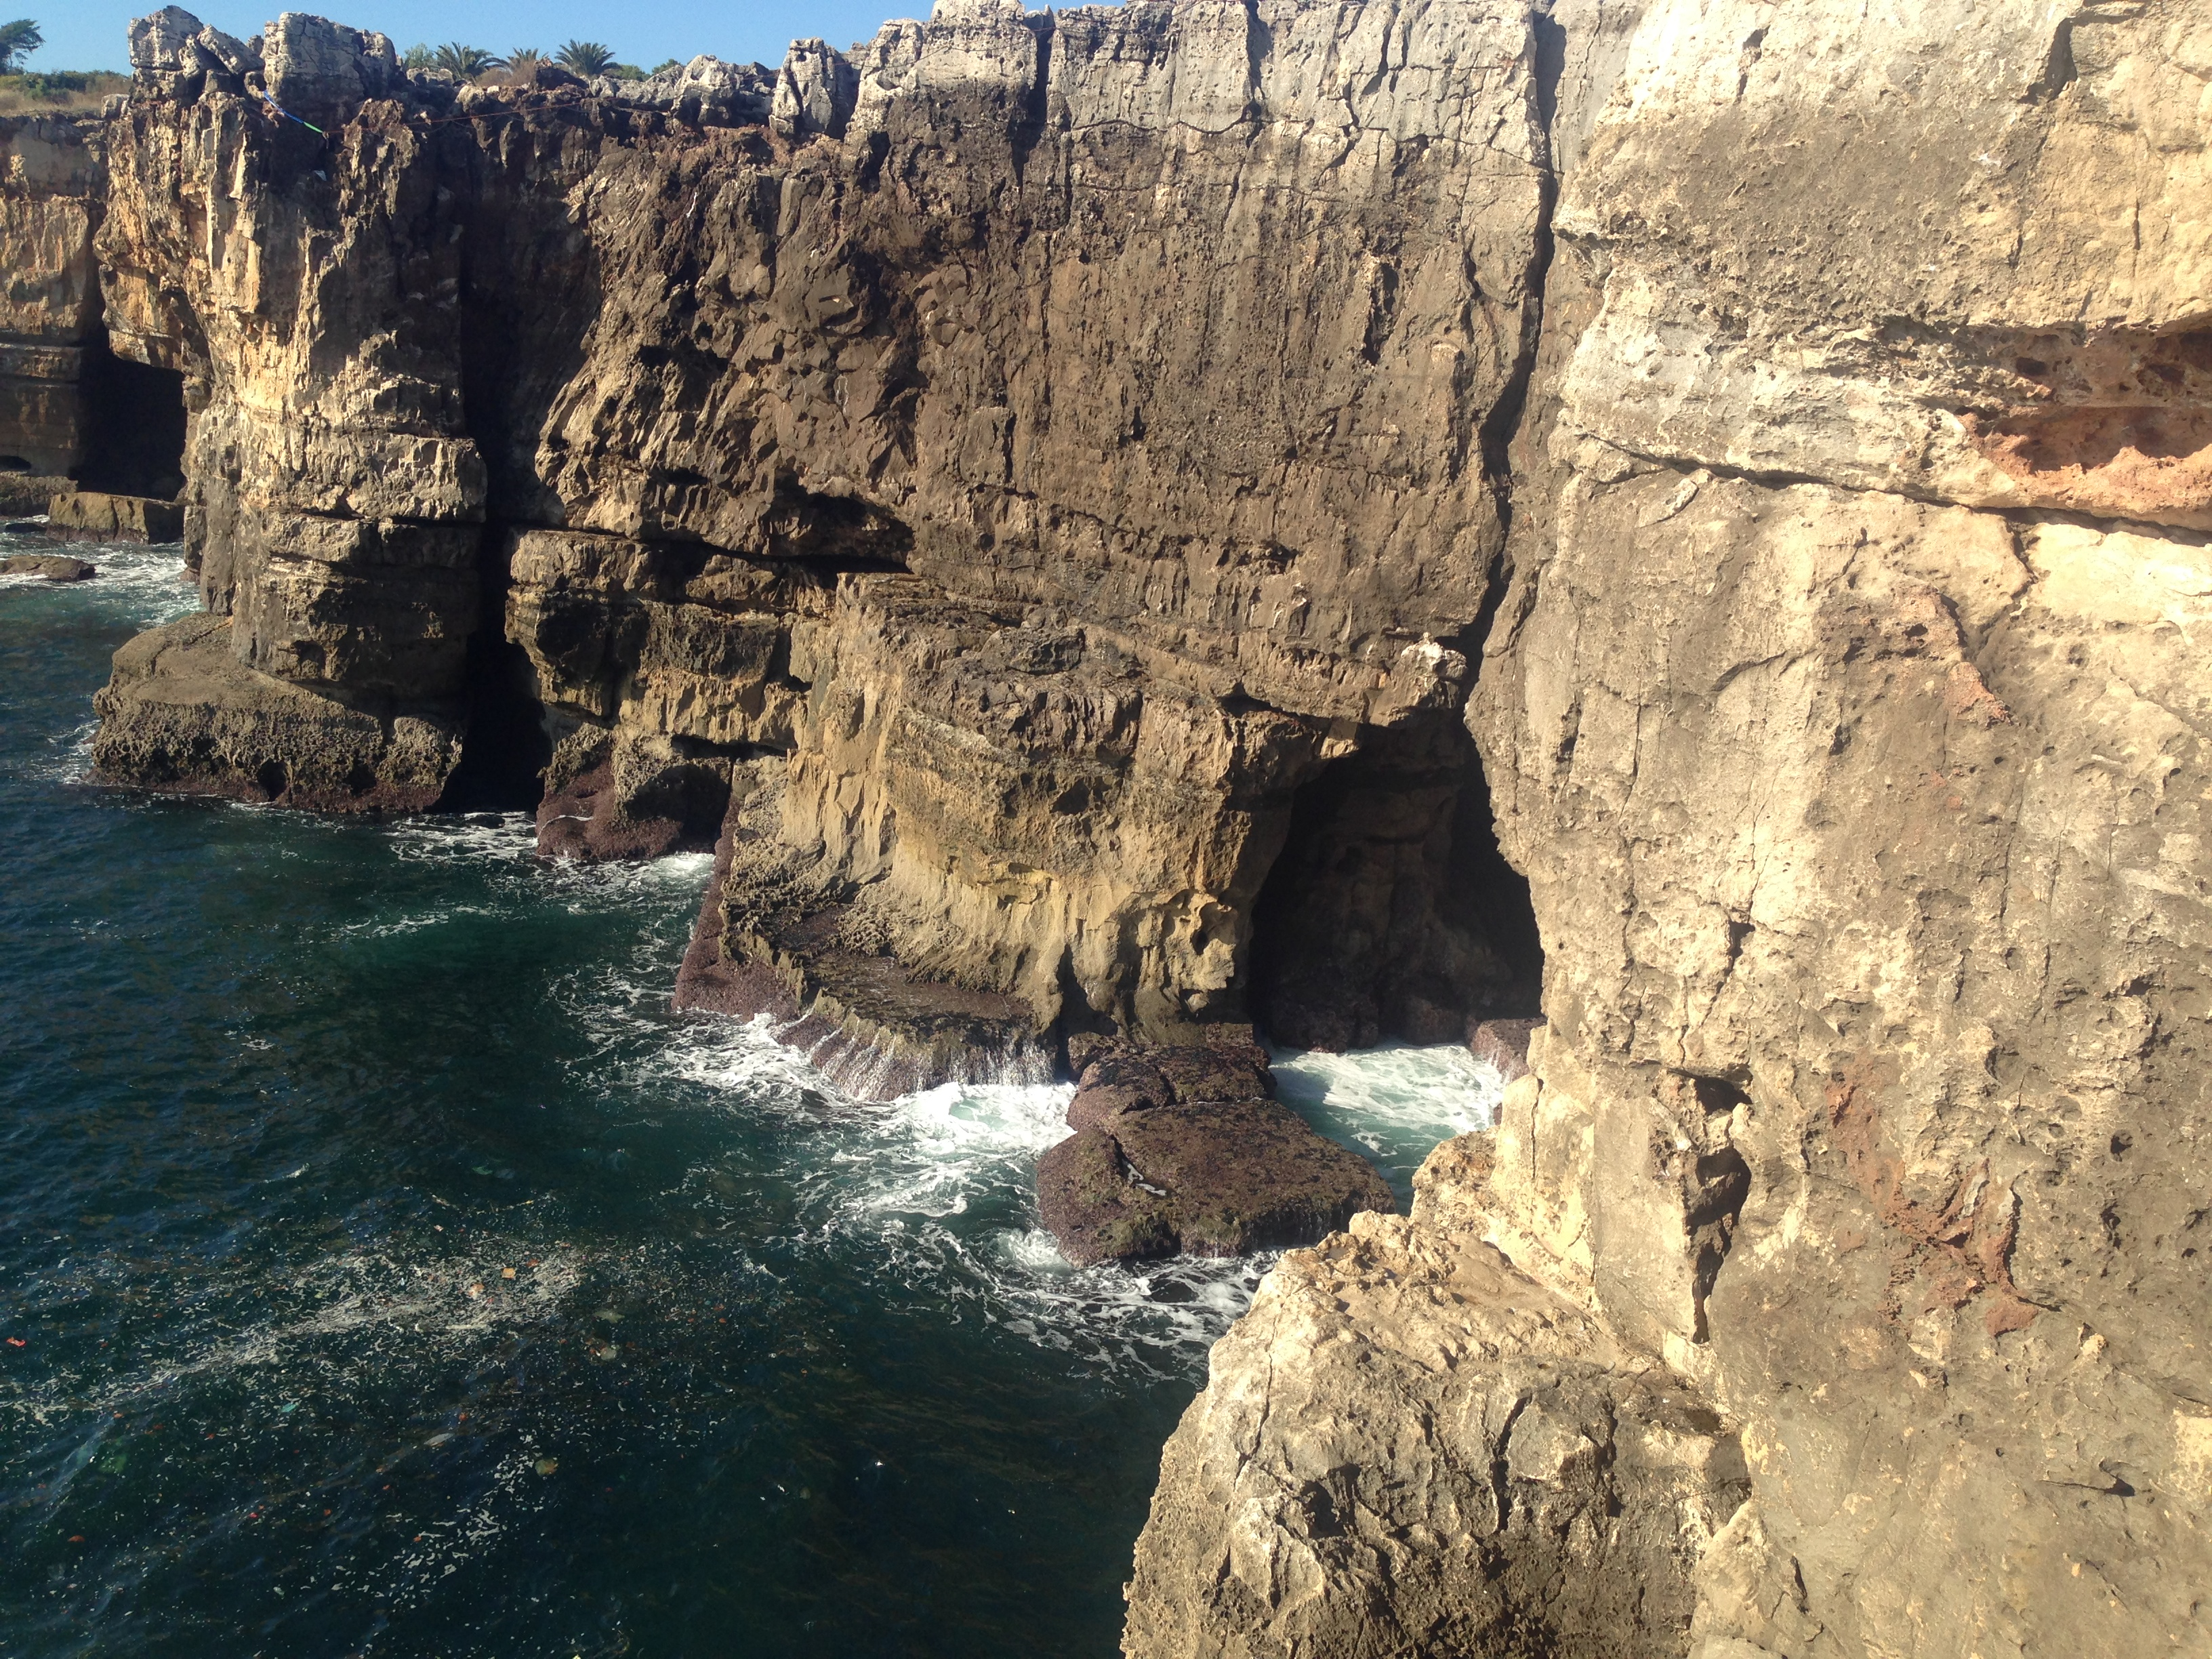 Sun, sea, sightseeing at Cascais, located about an hour from Lisbon.